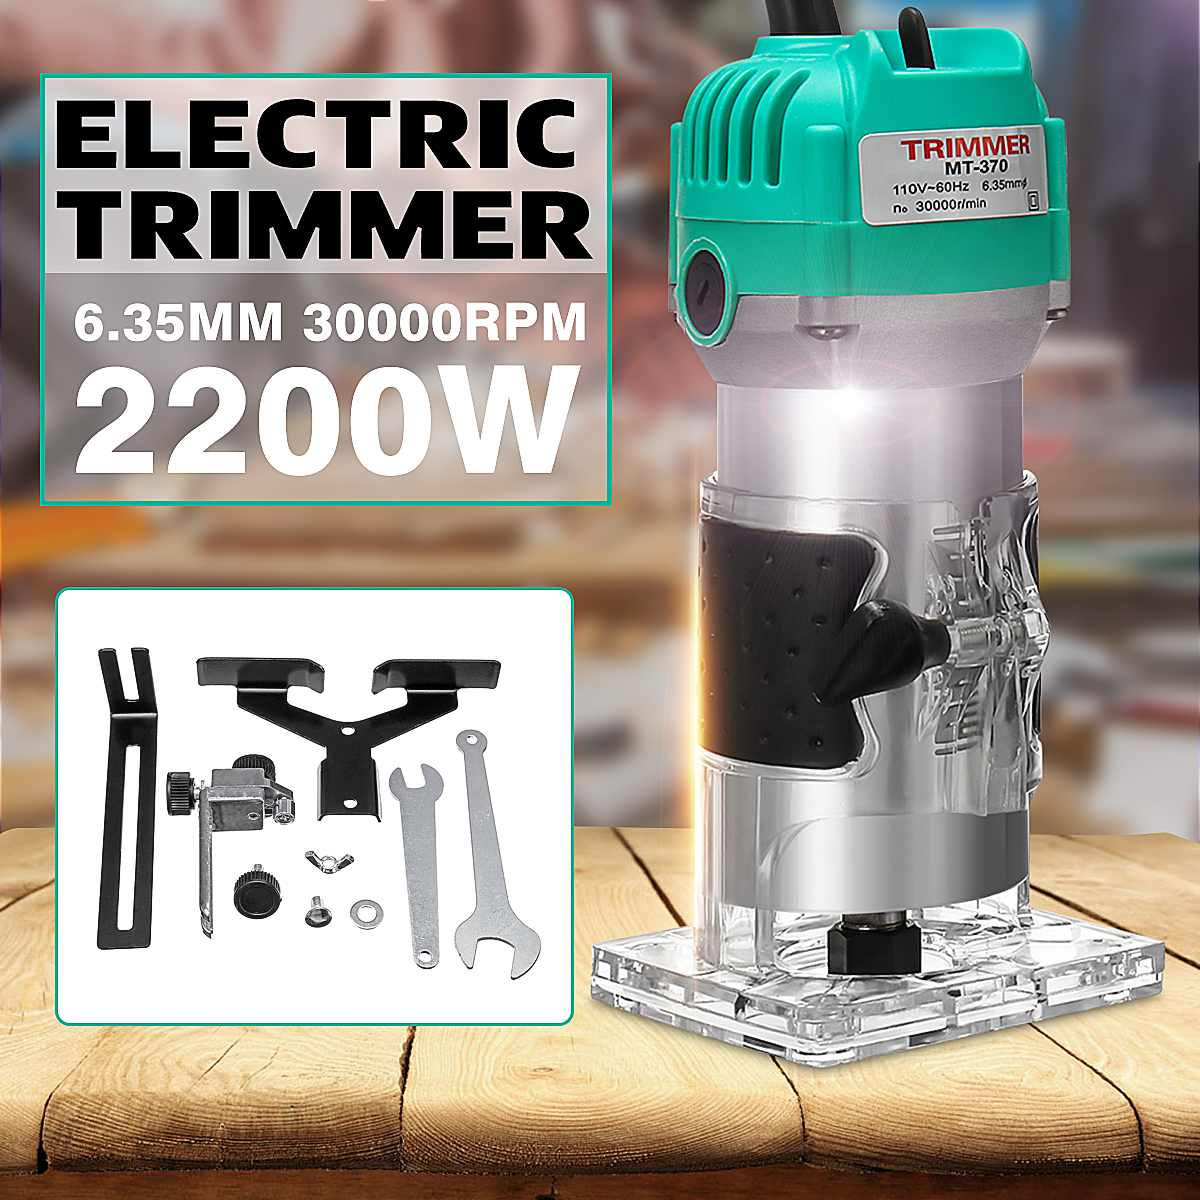 2200W 1/4 Inch Corded Wood Laminate Router 30000RMP Electric Hand Trimmer Woodworking Tool With 60inch Cable